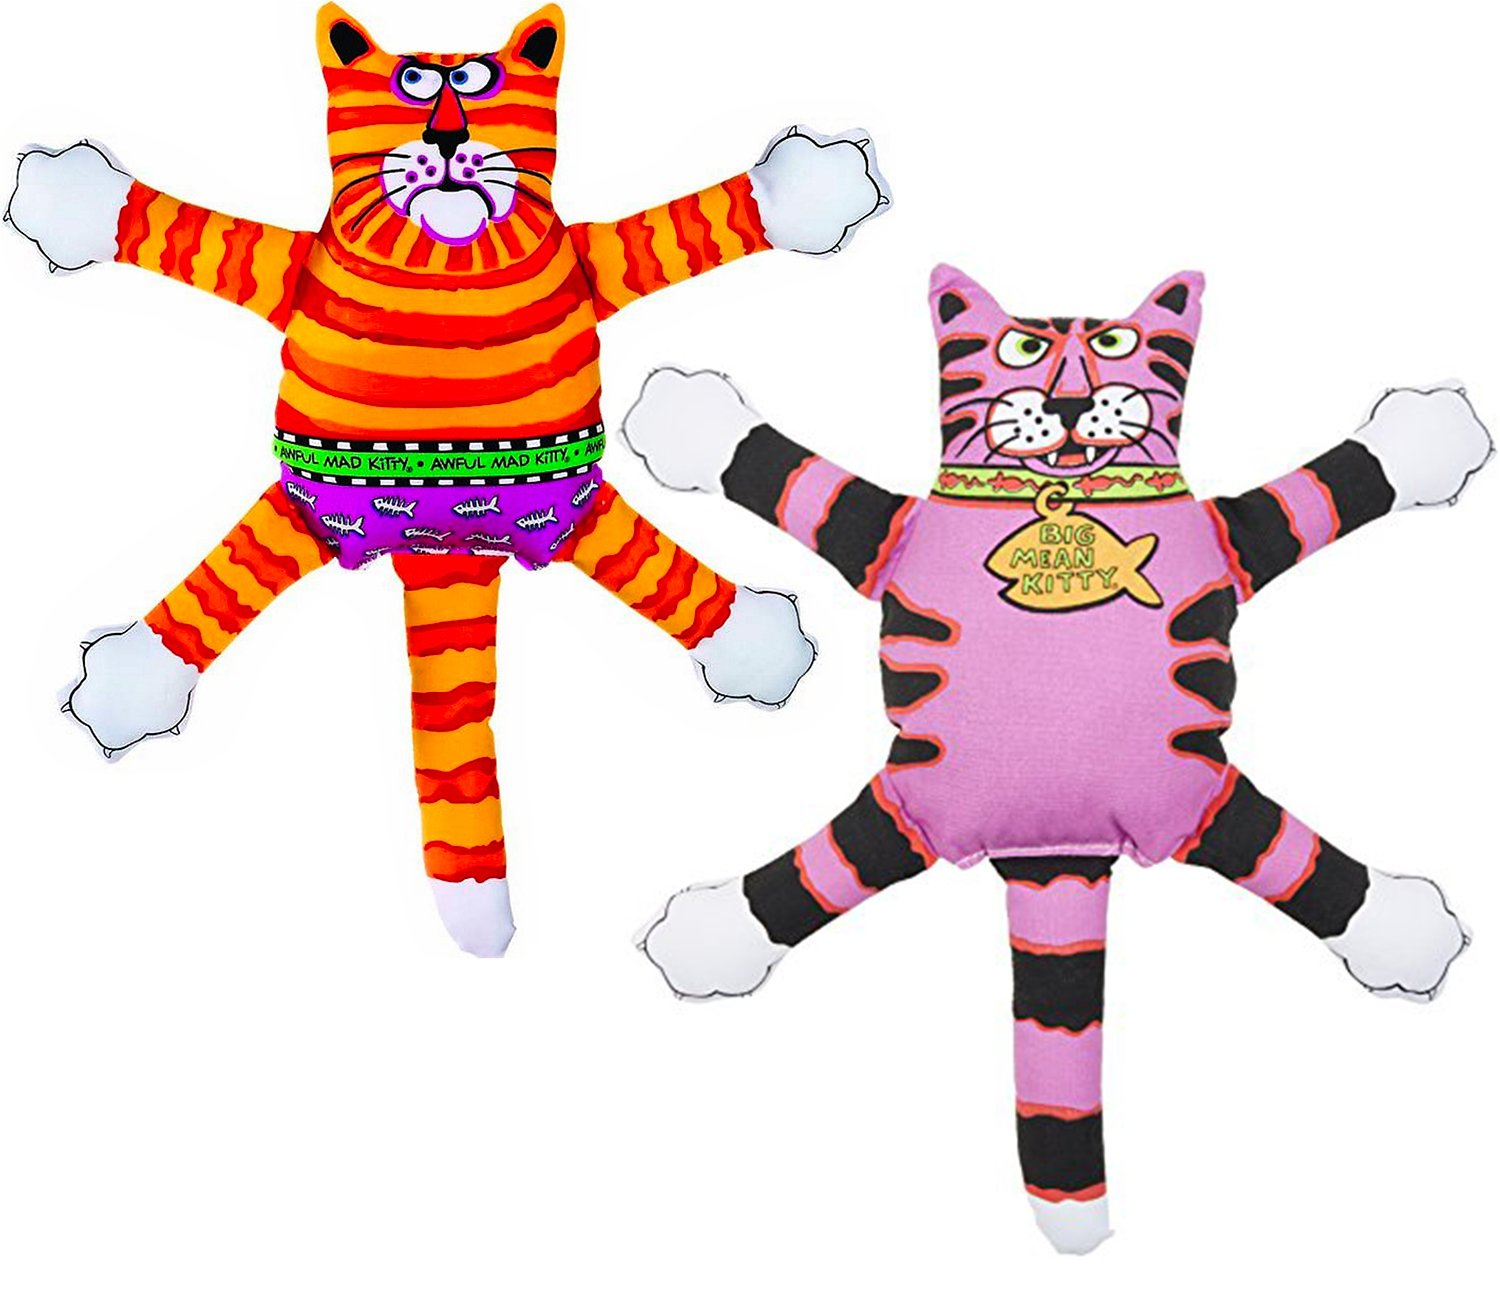 TwiceBooked Kitty Hoots Terrible Nasty Scaries Dog Toy Two Pack - One Big Mean Kitty & One Awful Mad Kitty